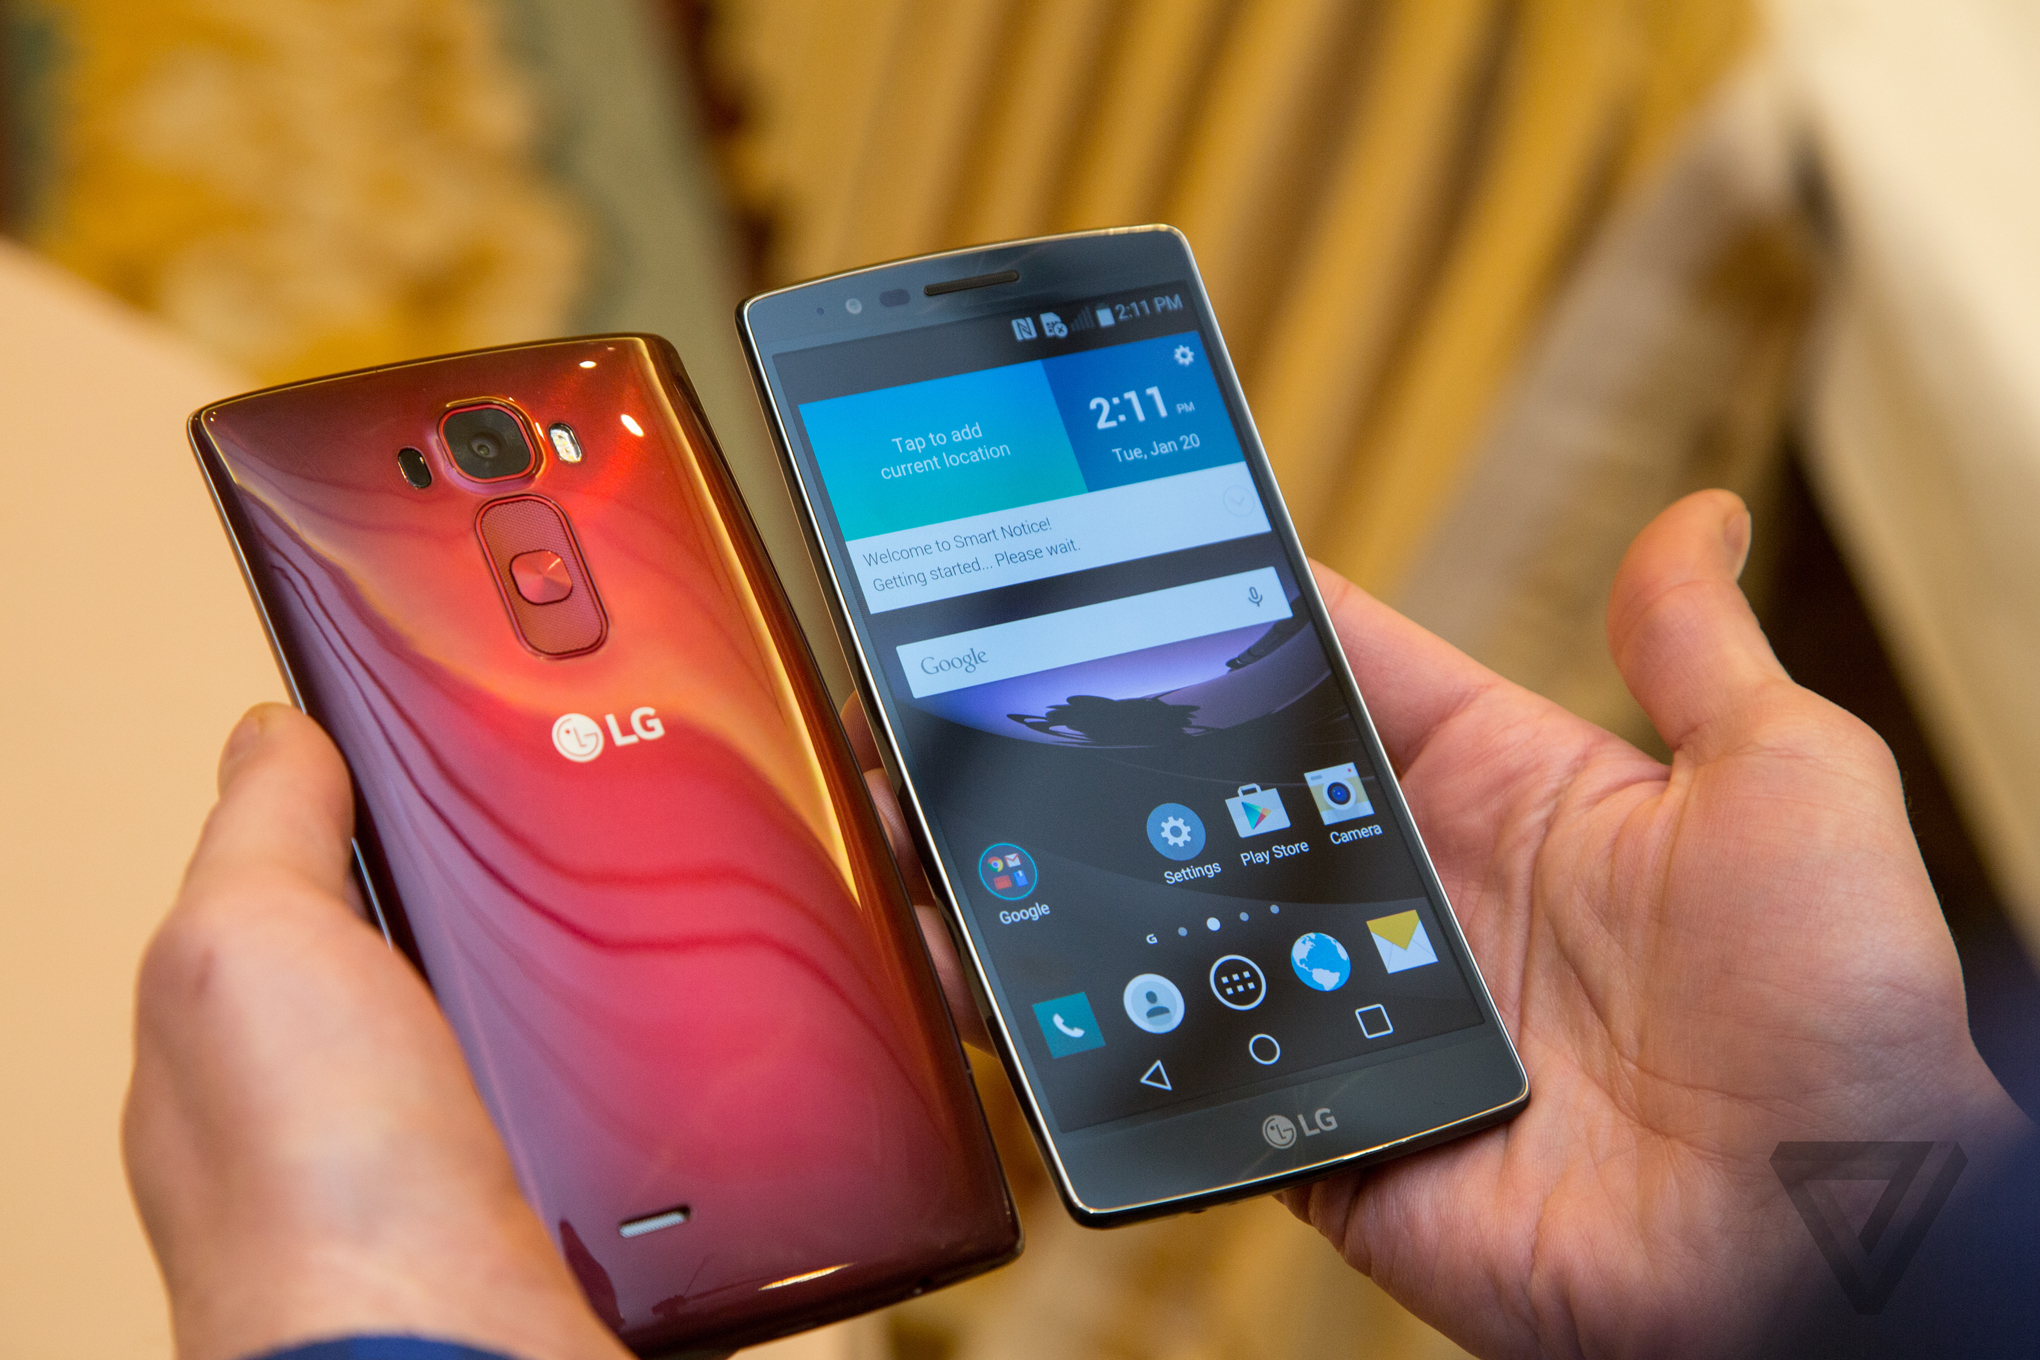 lg g flex 2 hands on photos the verge